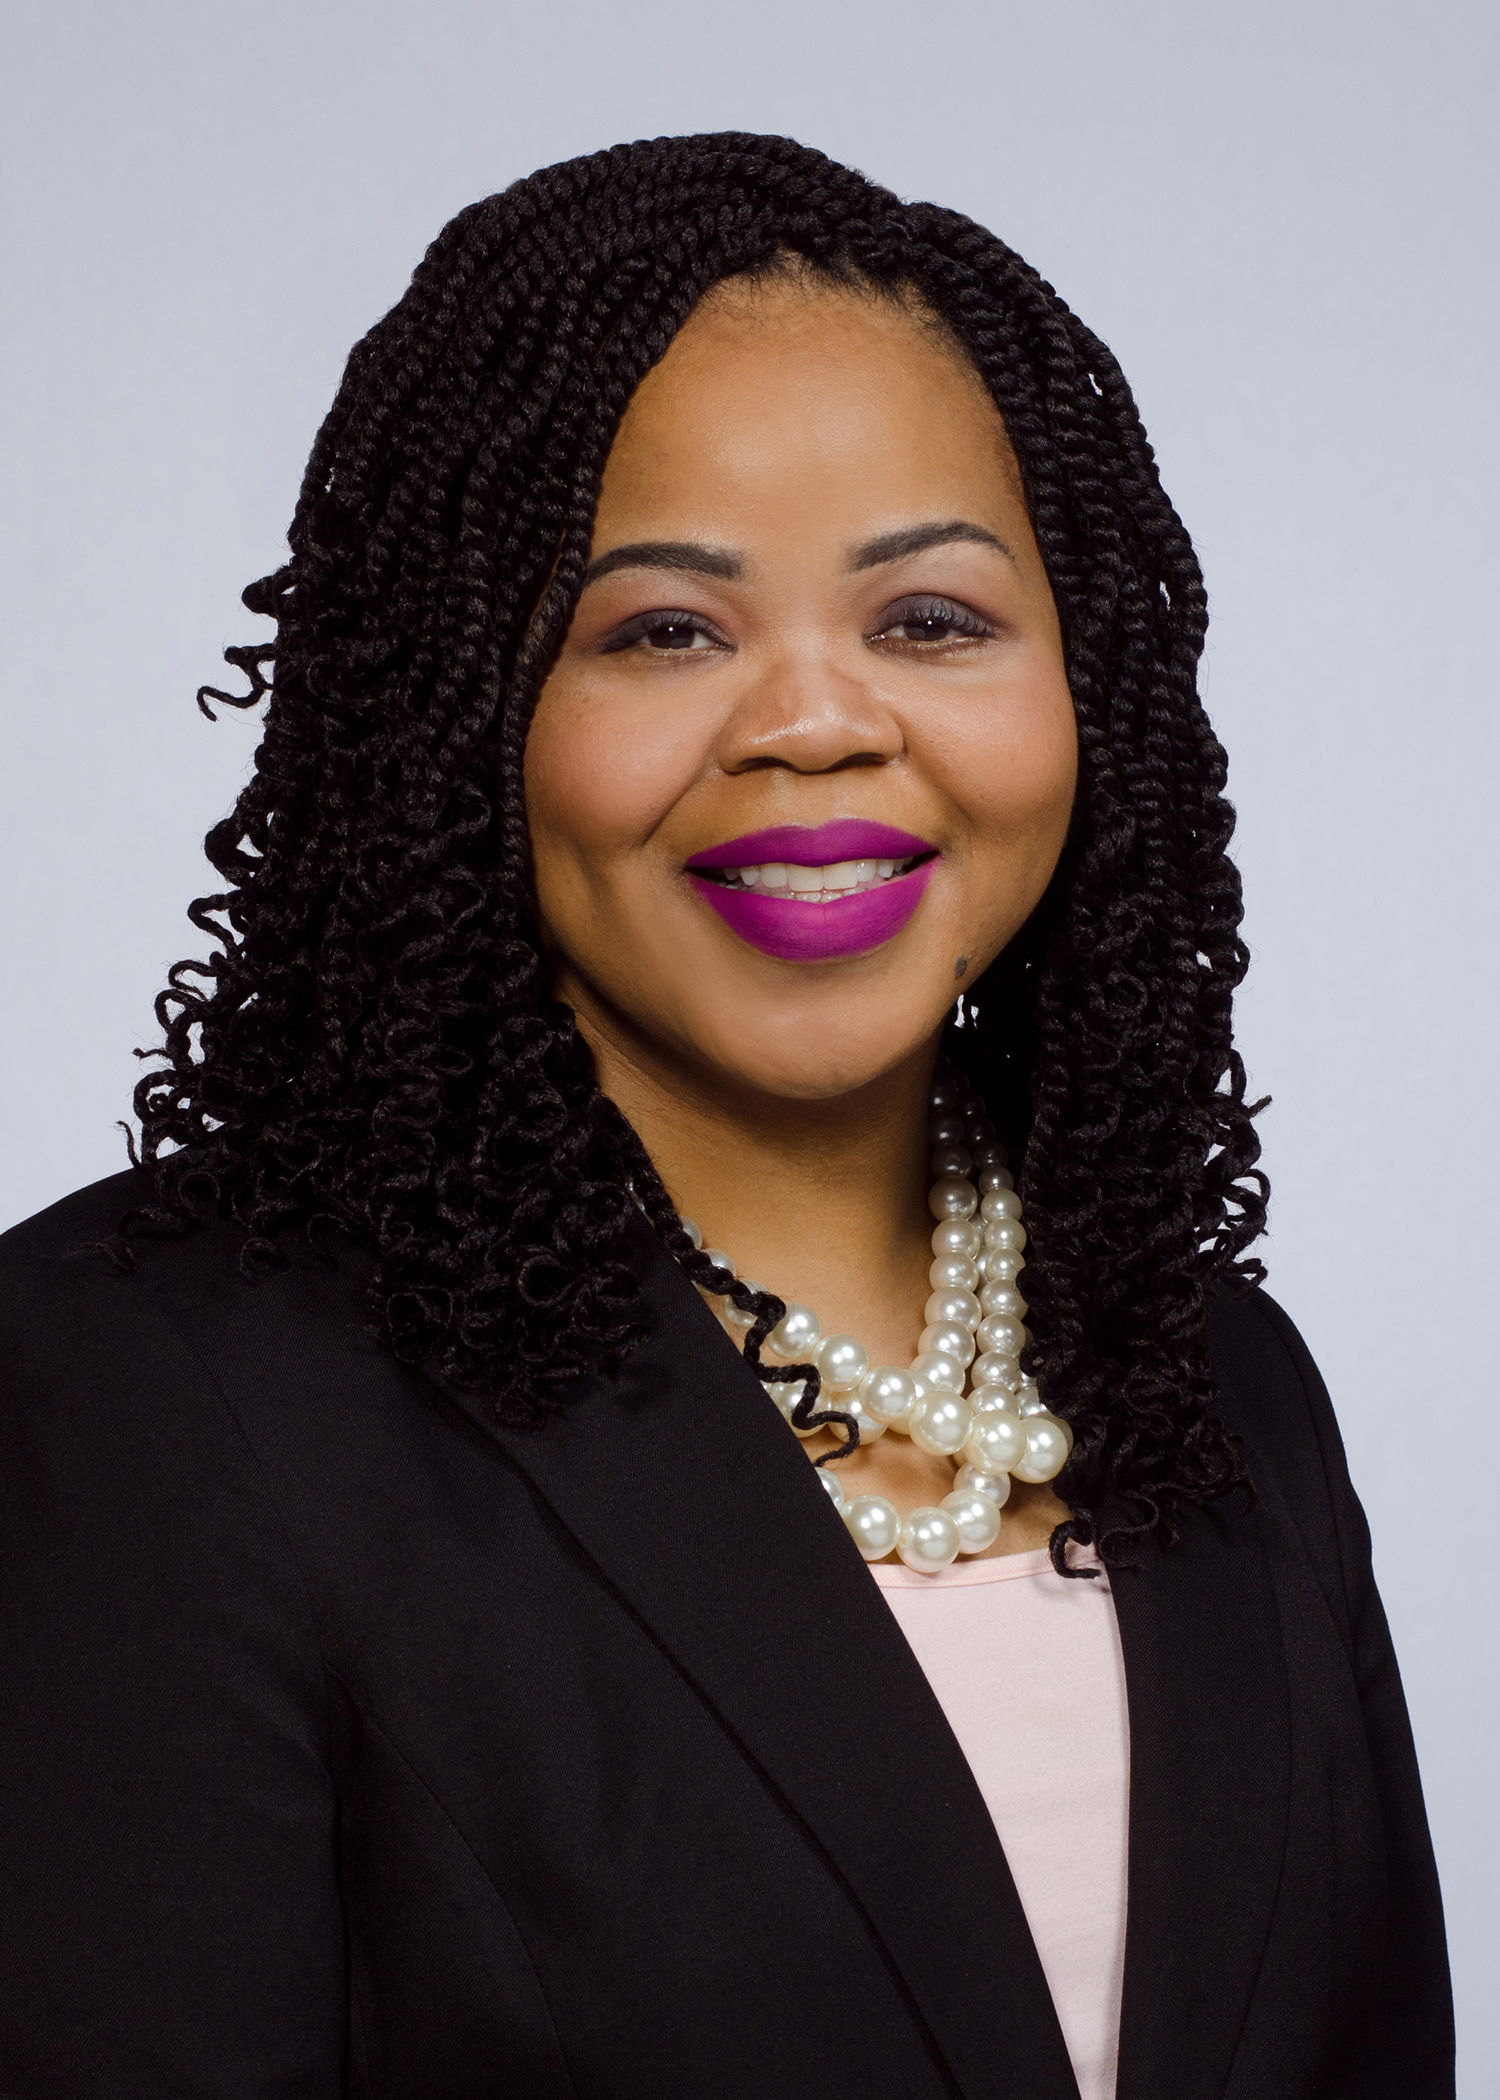 Lee Law Office congratulates their marketing director Norma N. Lee on being selected to attend a Leadership Quest Program